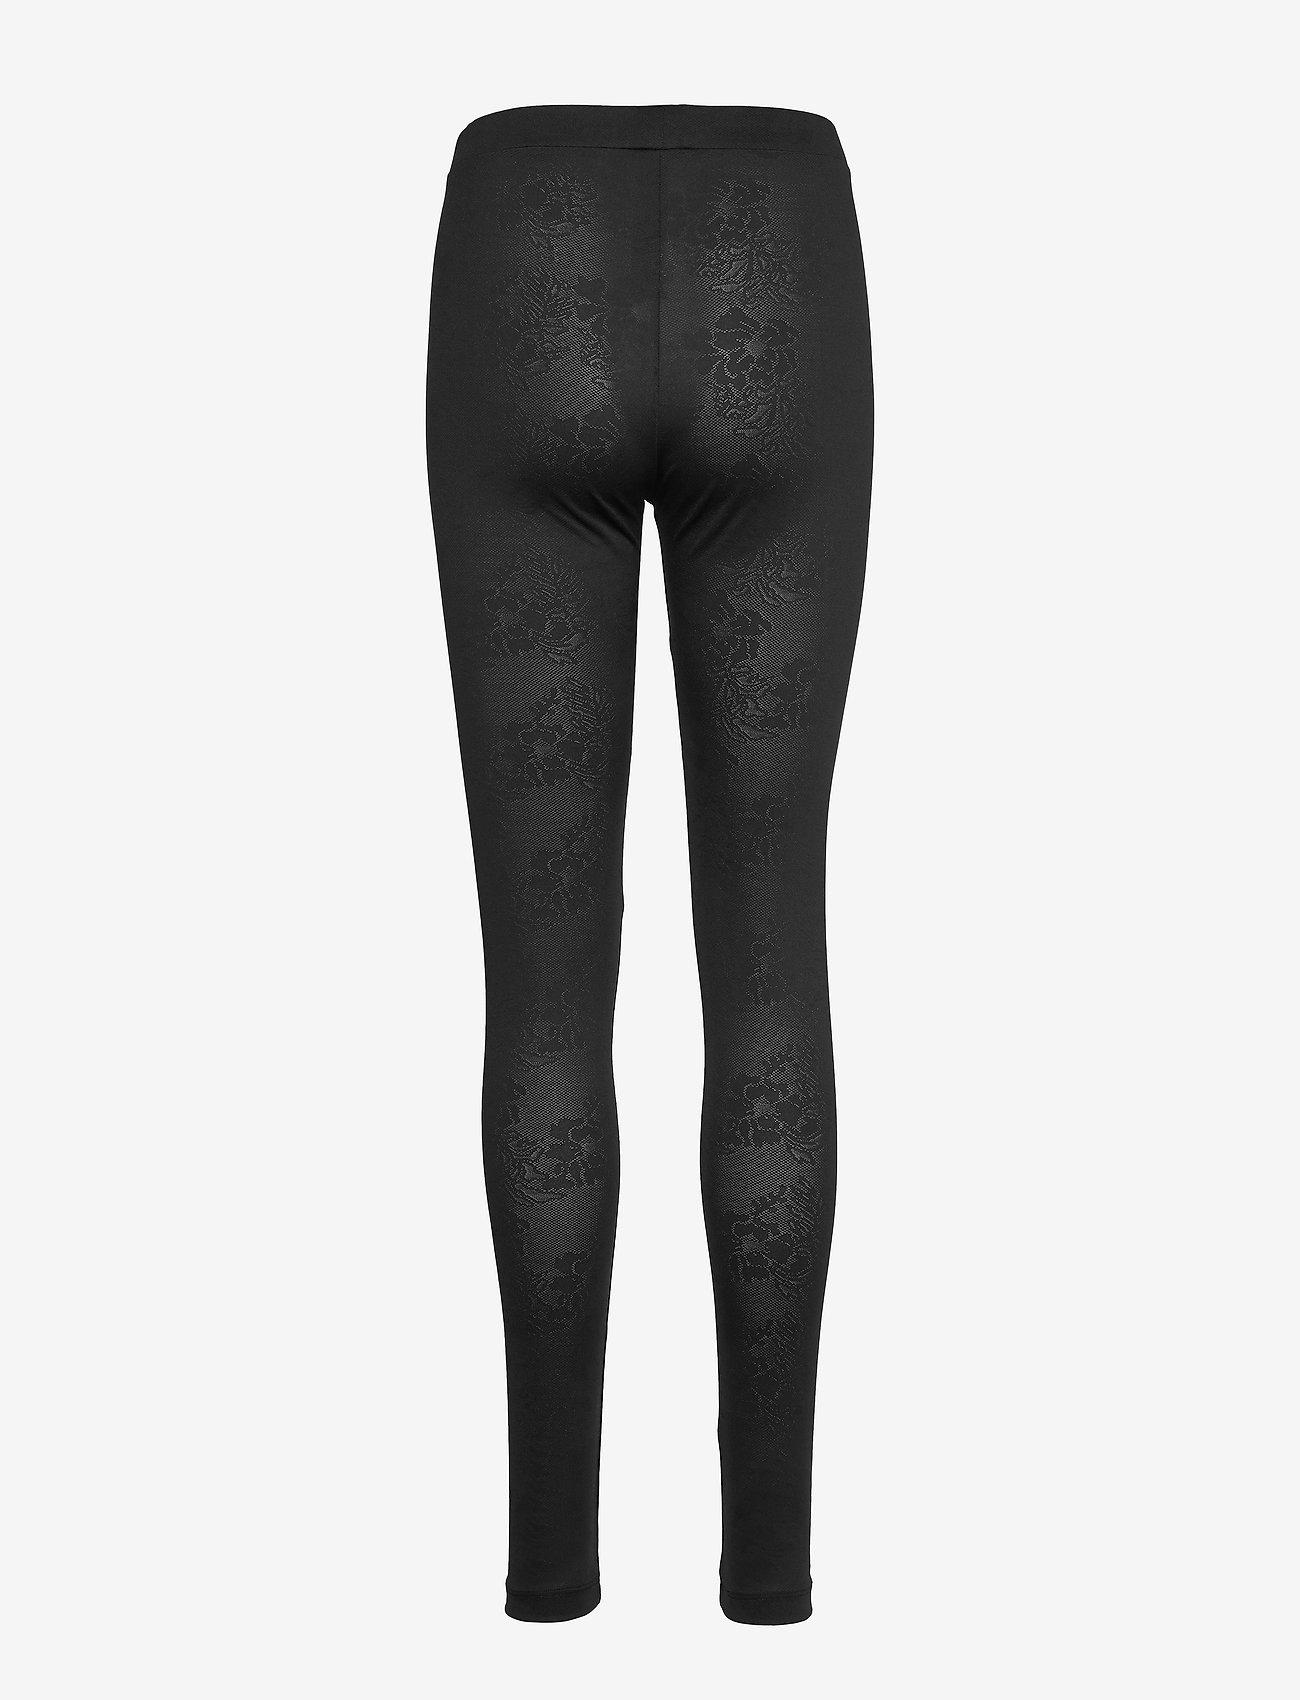 Residus - BEY JACQUARD TIGHTS - leggings - black - 1